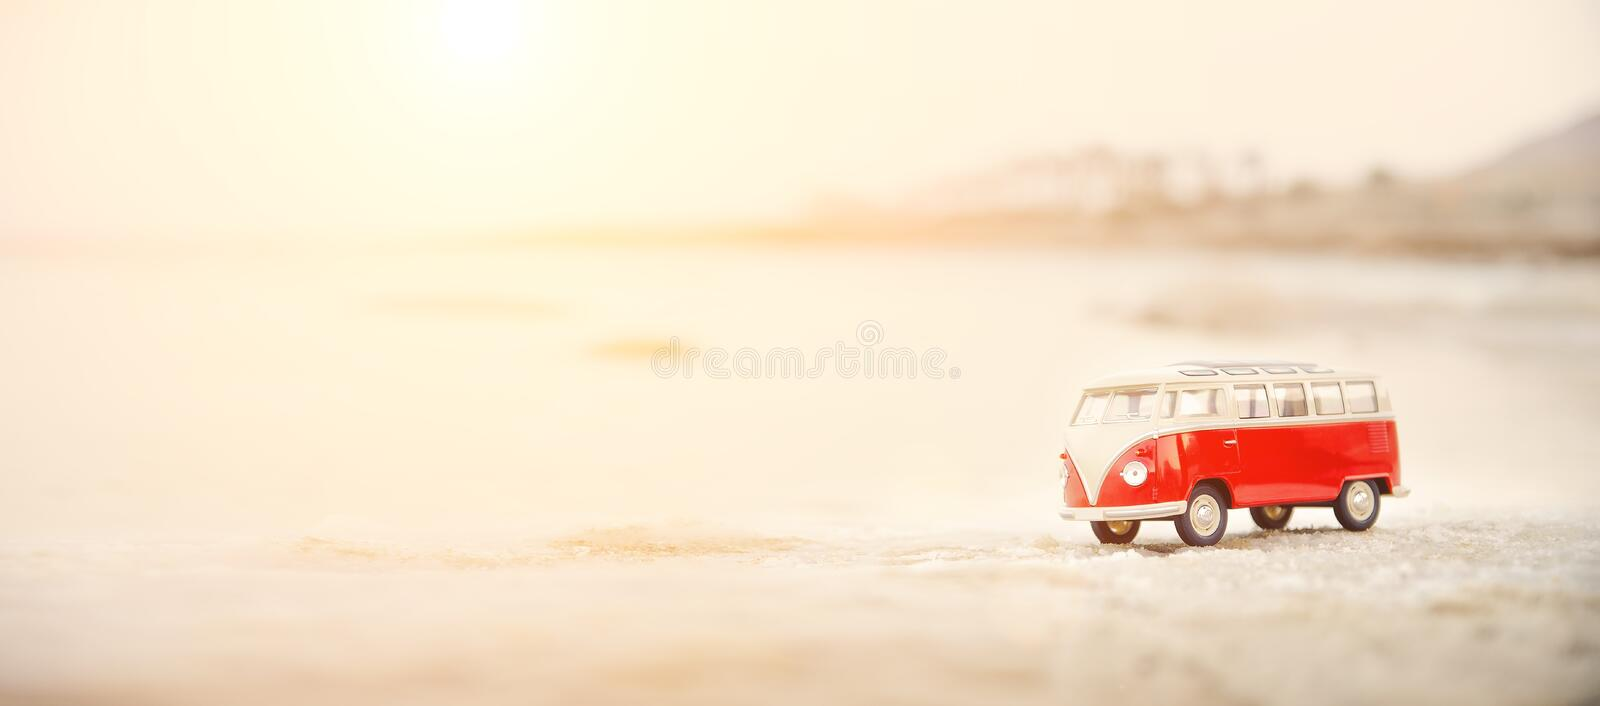 Toy car, model bus park in the sand near sea. Travel concept. Copy space. Sunny day. Toy car, model bus park in the sand near sea. Travel concept. Copy space royalty free stock images